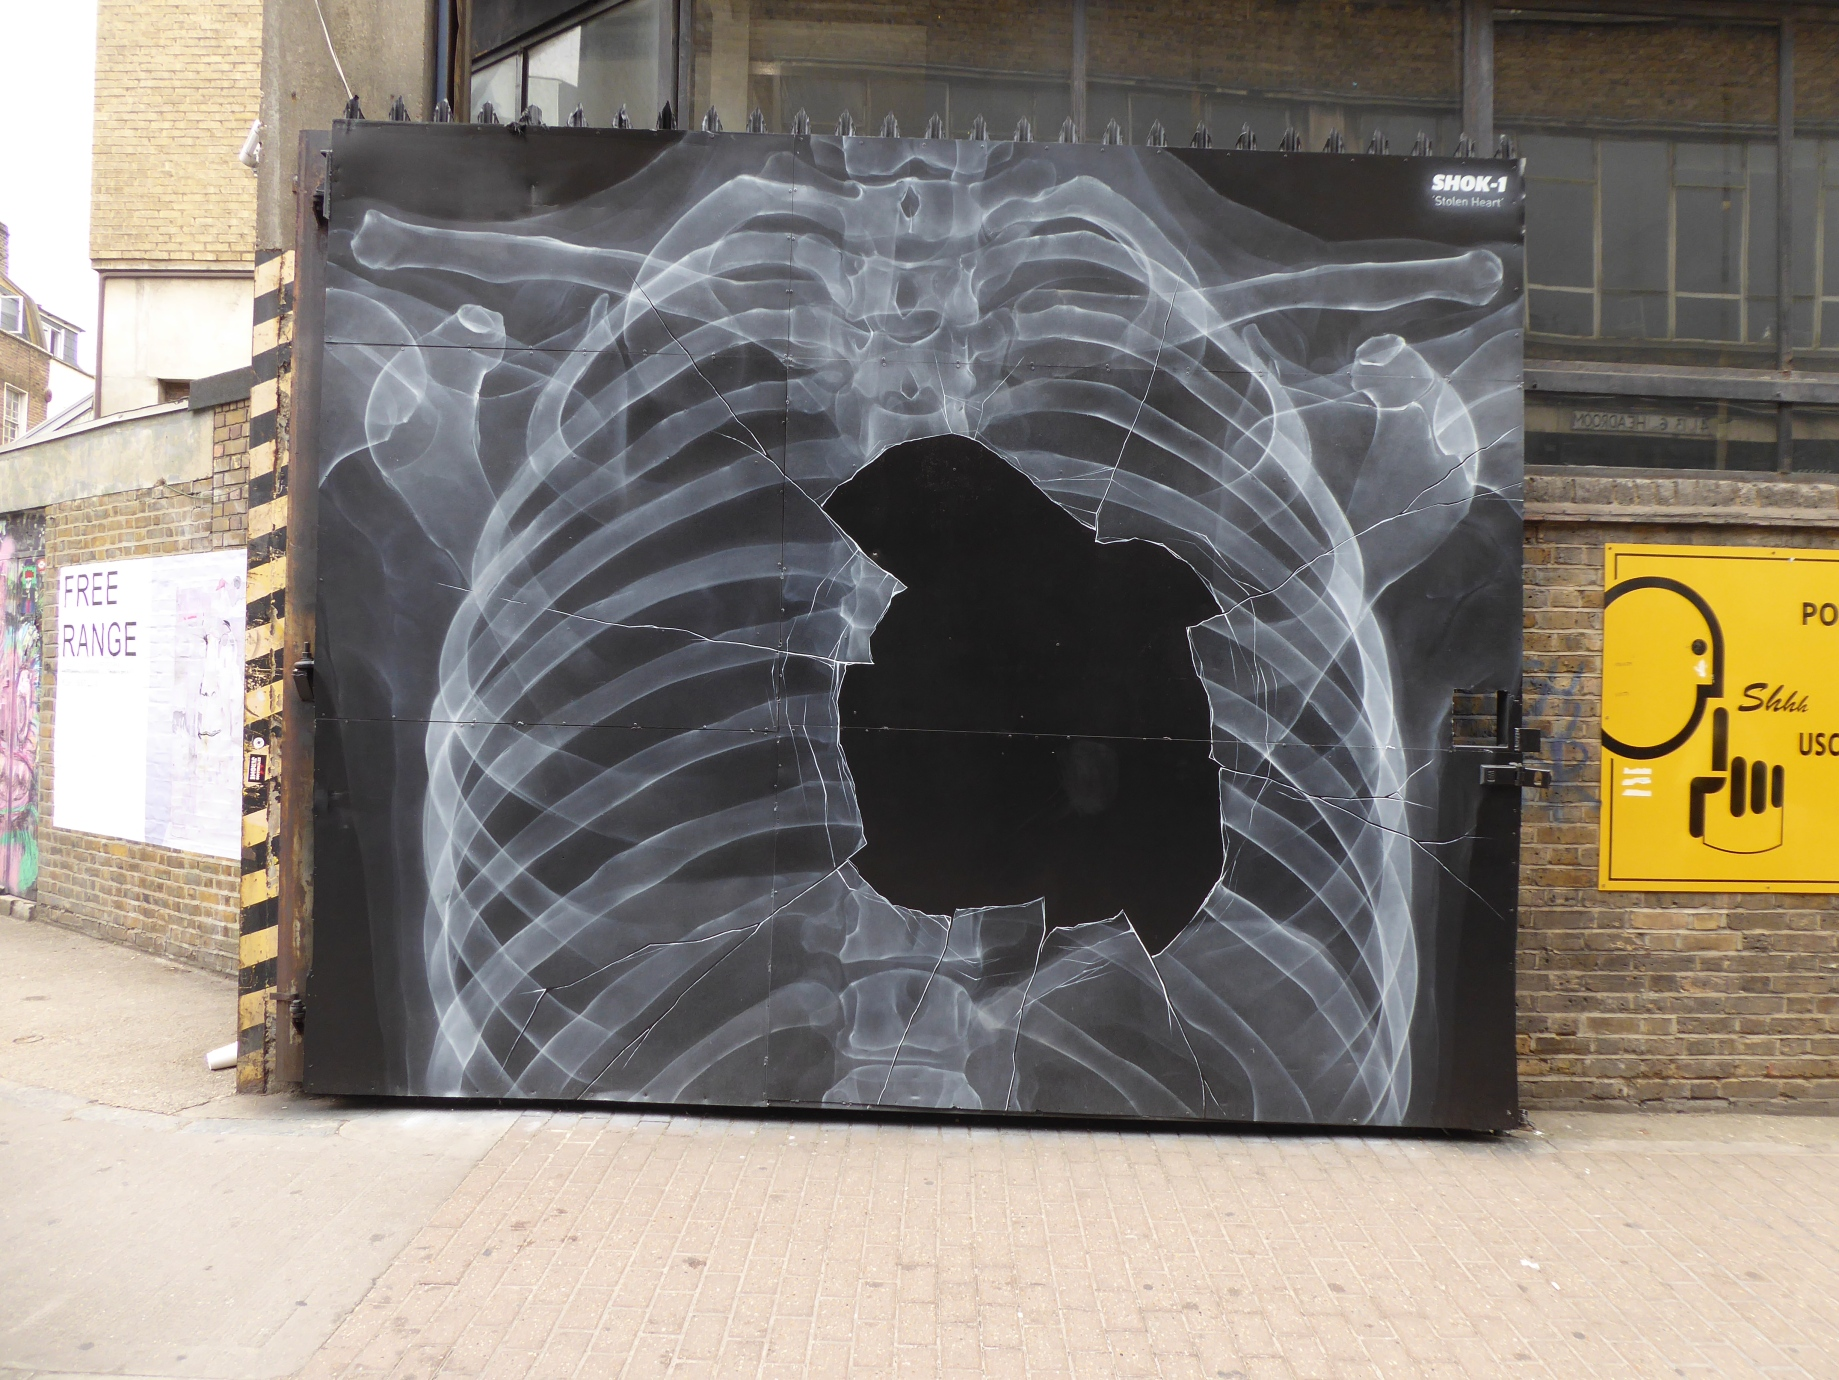 New shok 1 street art stolen heart in brick lane